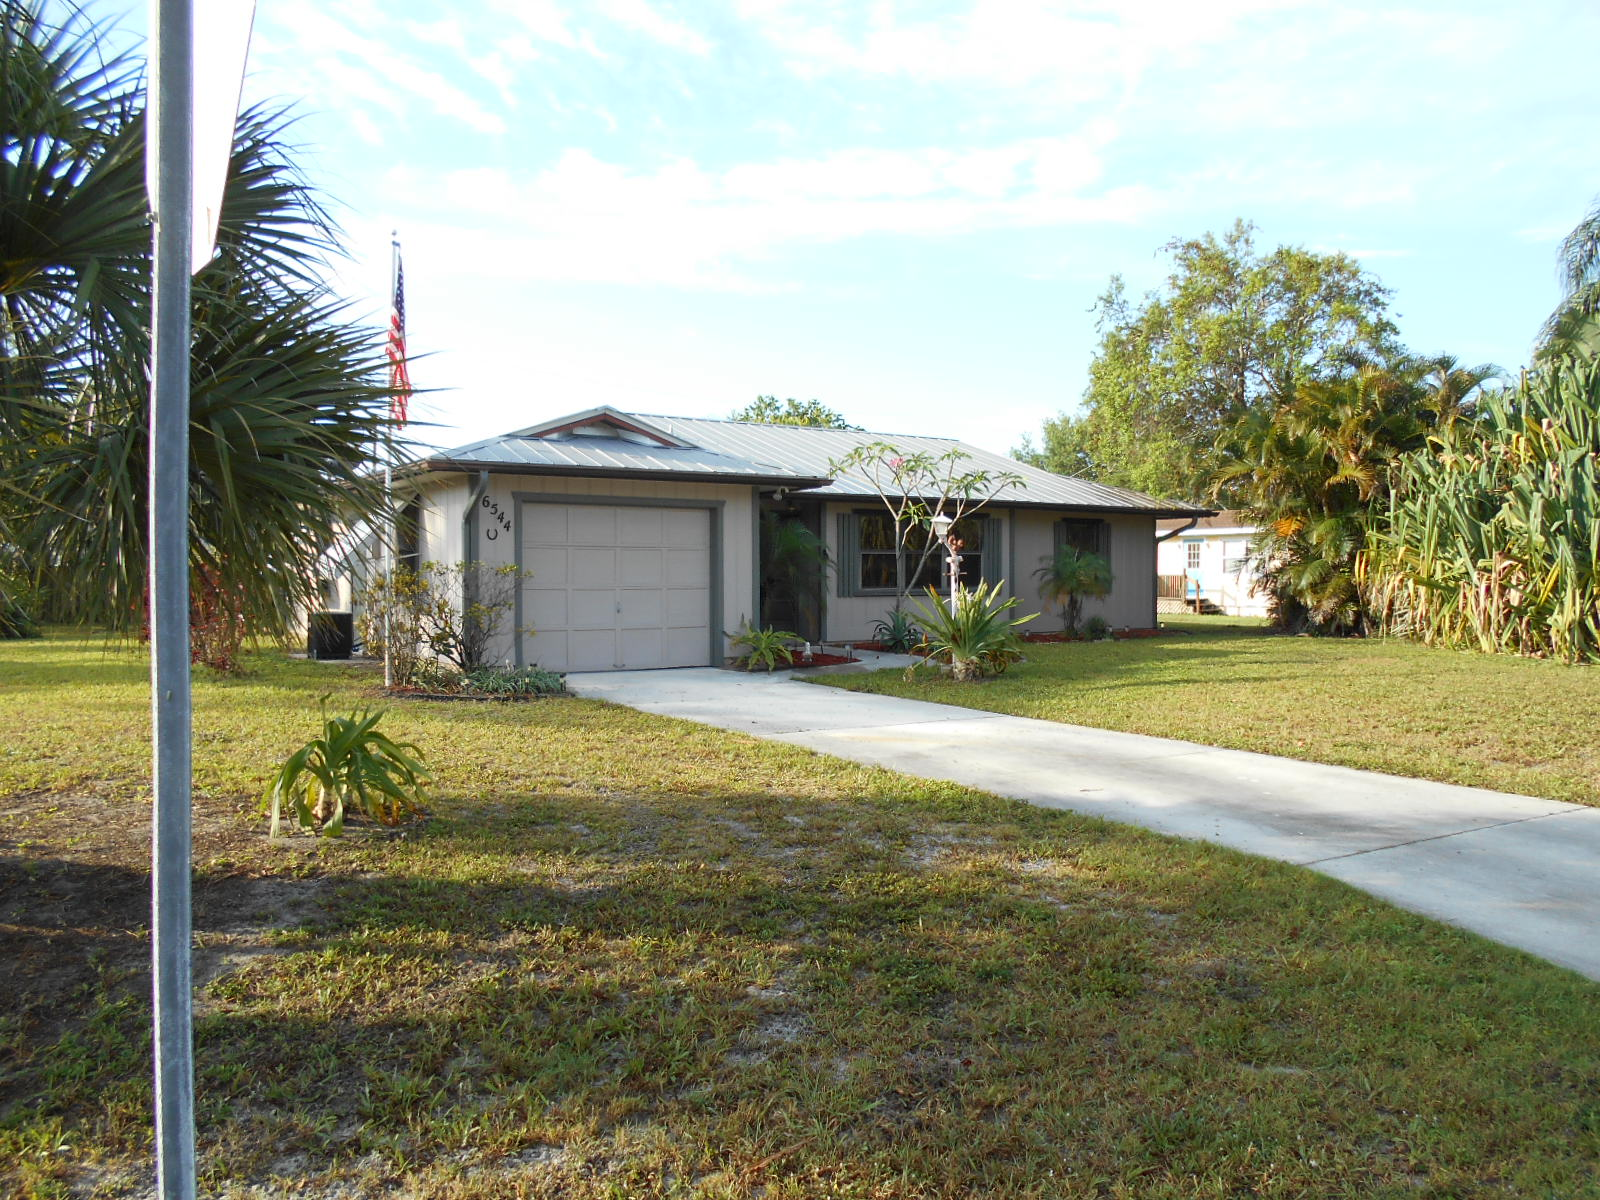 3 2 1 Hobe Sound Quot Homes For Sale In Martin County Fl